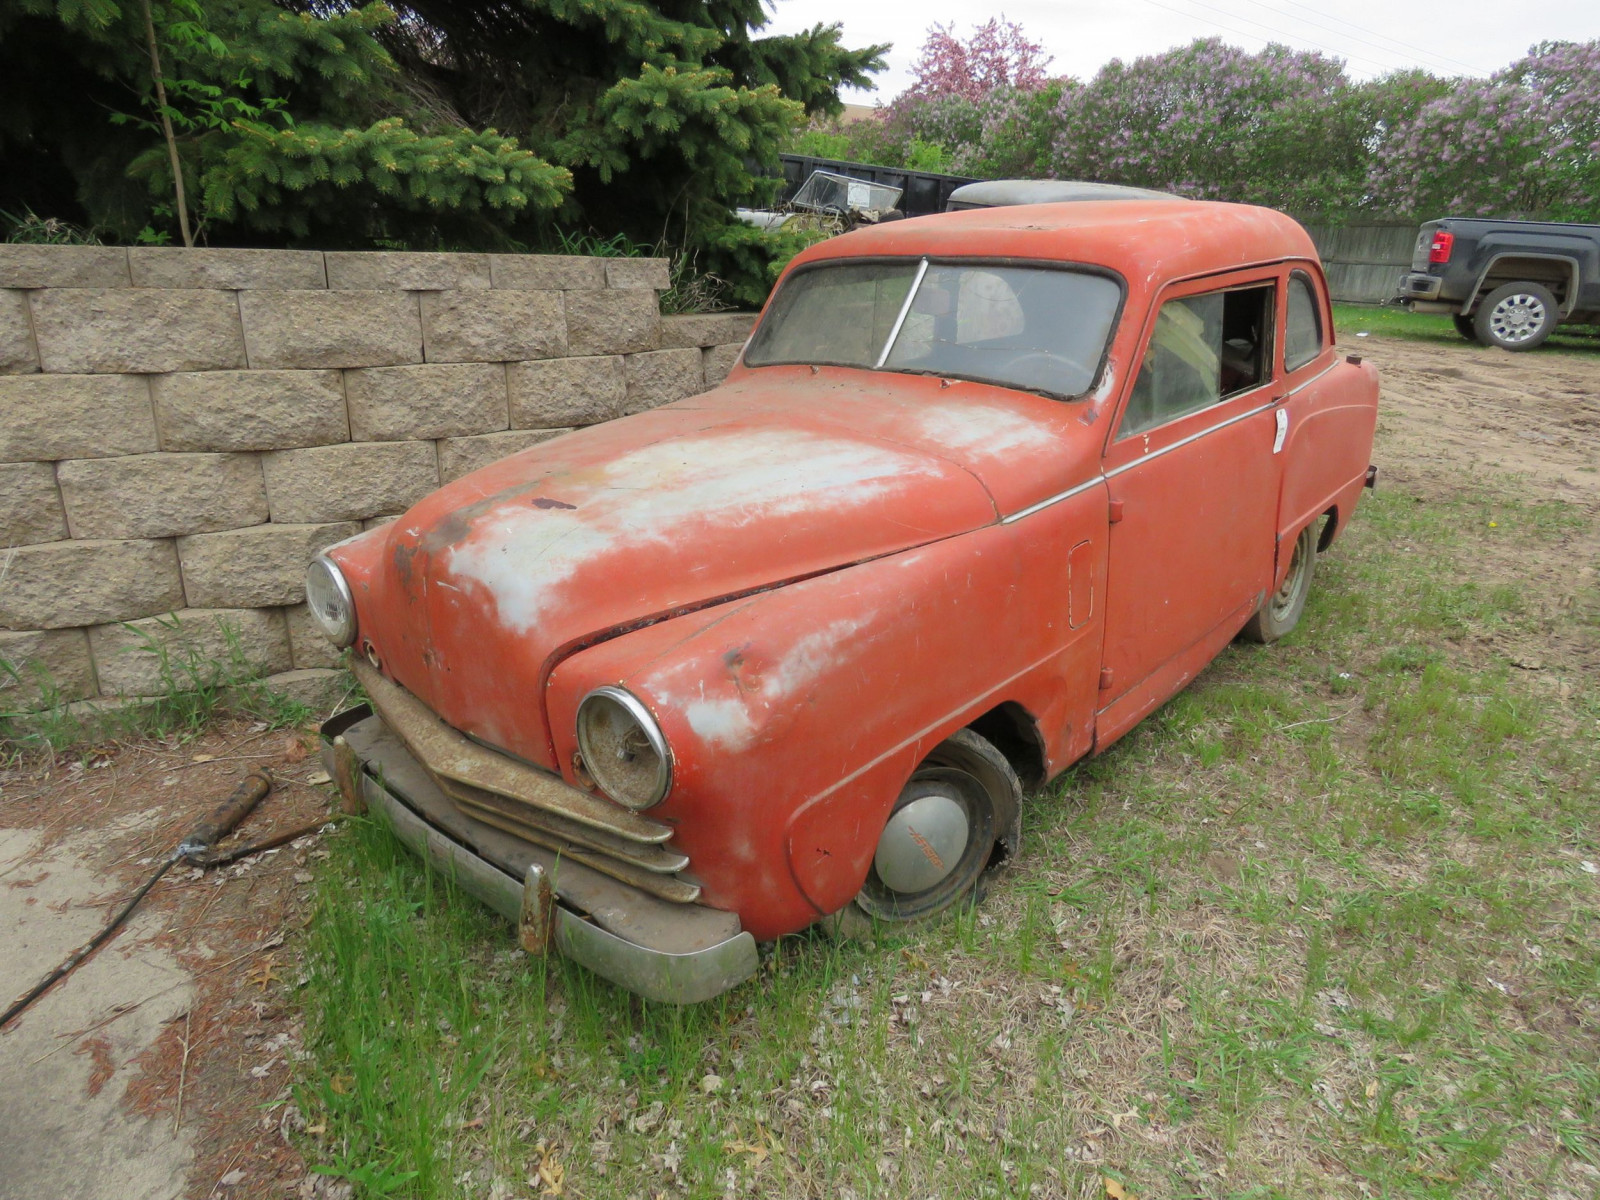 1950's Crosley 2dr Sedan for Project or Parts - Image 1